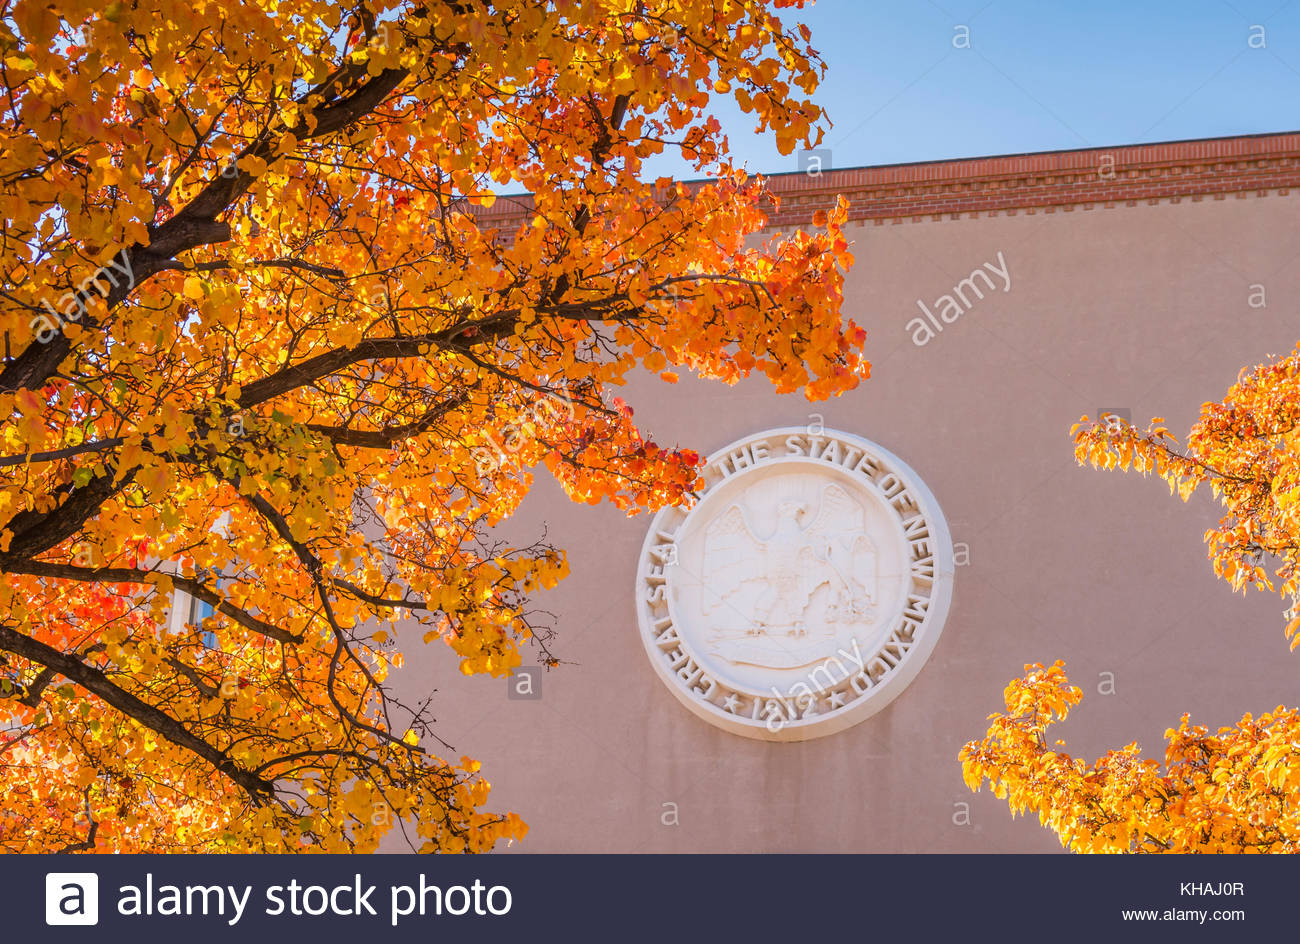 Great Seal of the State of New Mexico, 1912, on the capitol building, the roundhouse in Santa Fe, New Mexico, USA - Stock Image